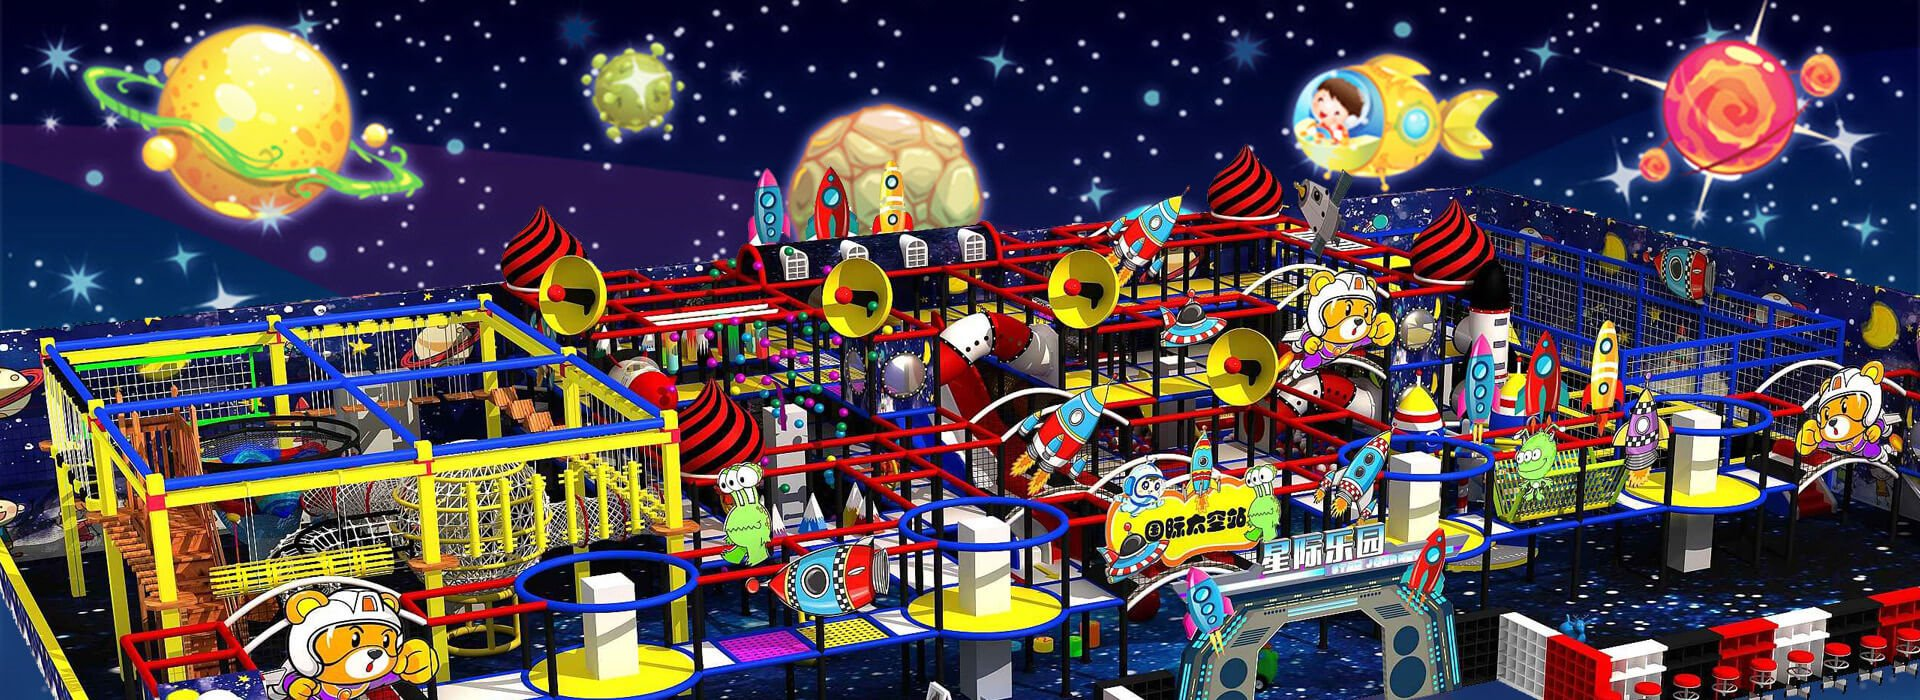 Customized Space Theme Soft Indoor Playground